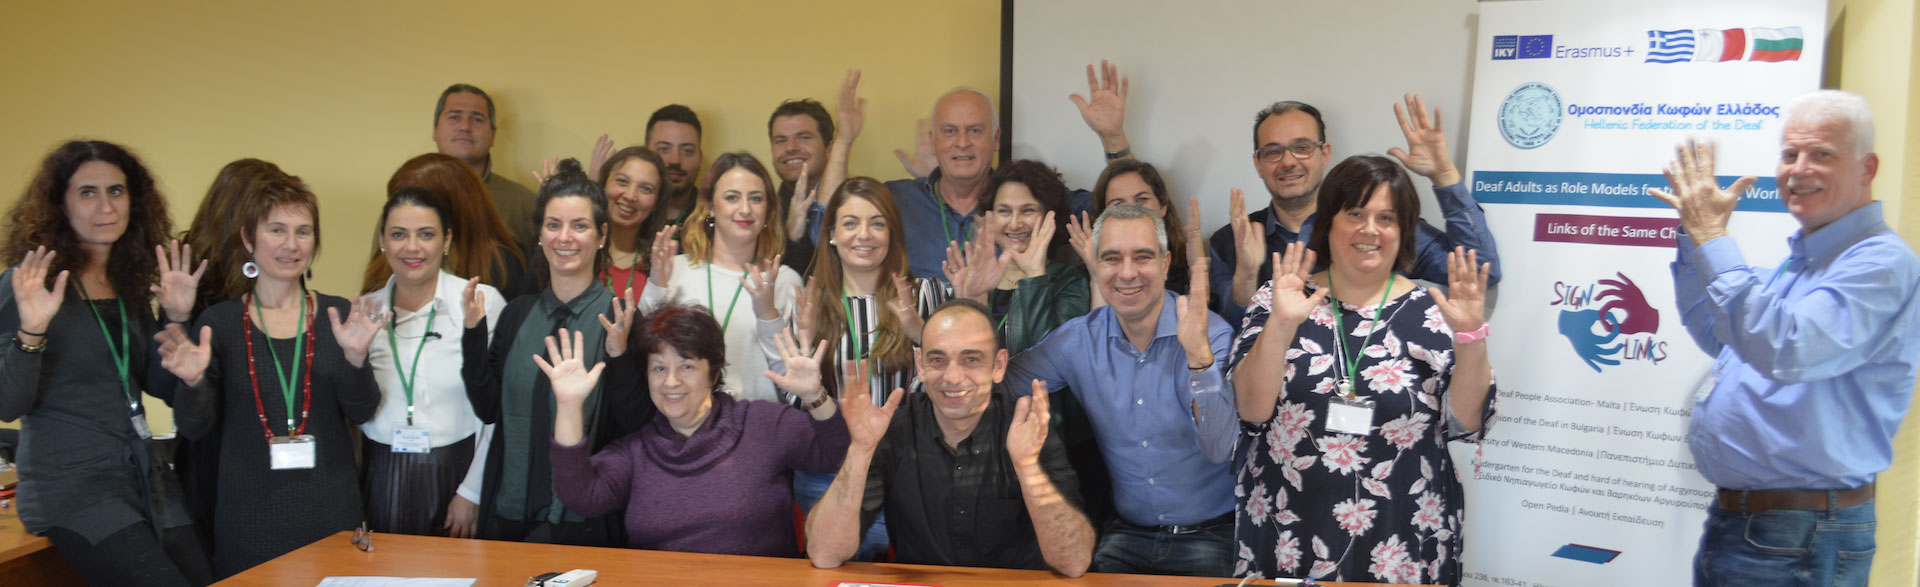 All the participants in the end of the 1st Transnational Project Meeting of Sign Links